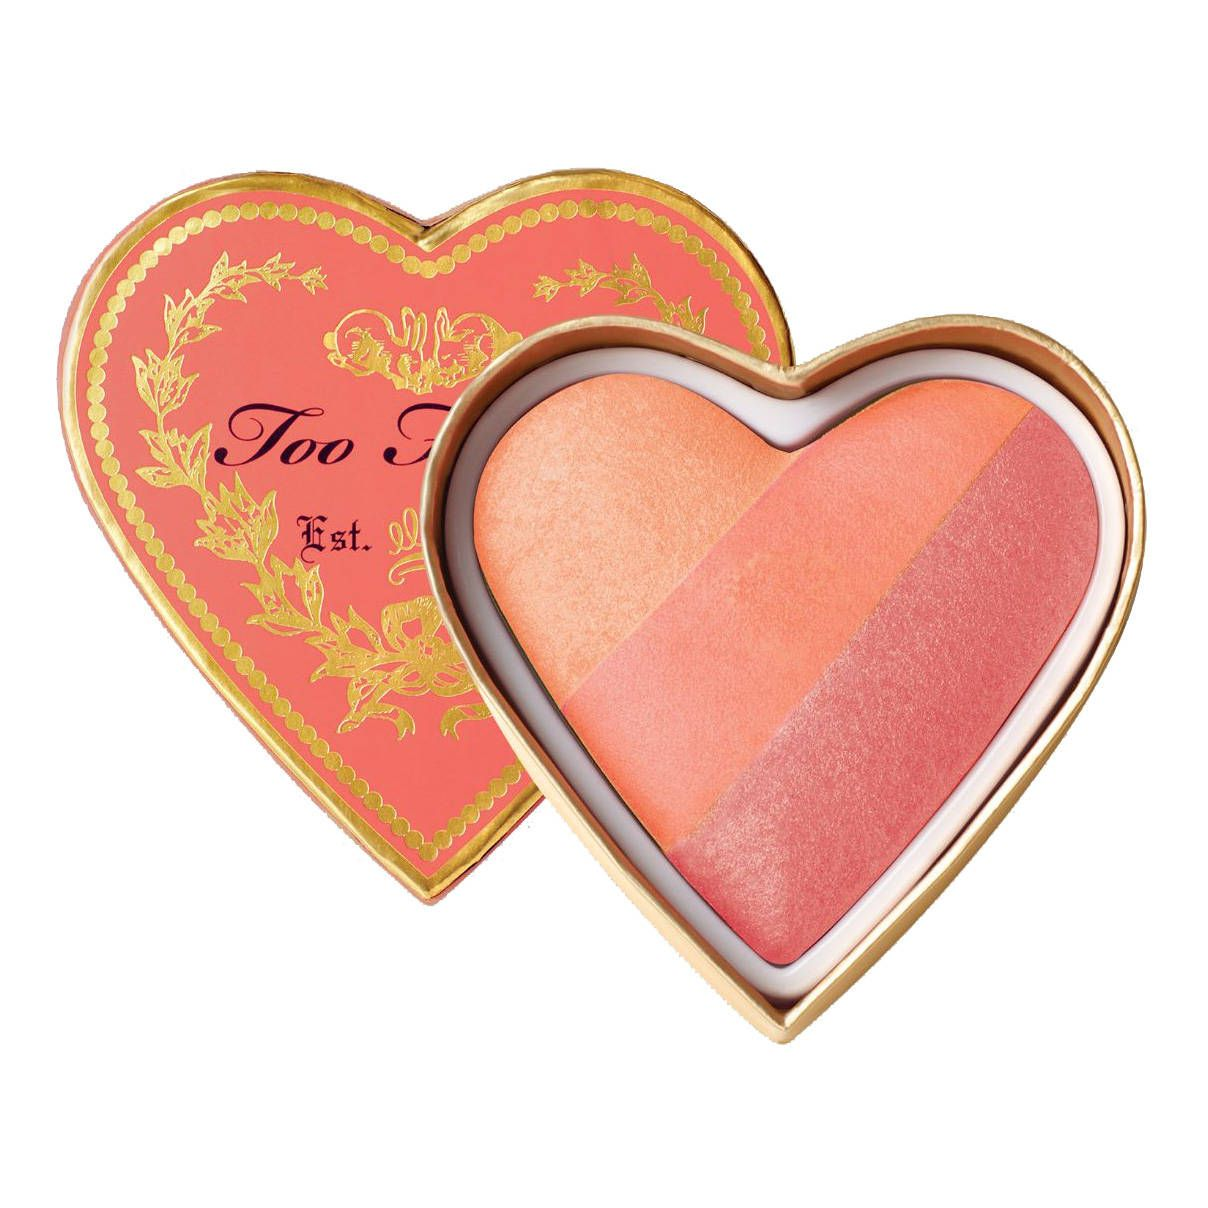 Sweetheart's perfect Flush Blush • TOO FACED ≡ SEPHORA